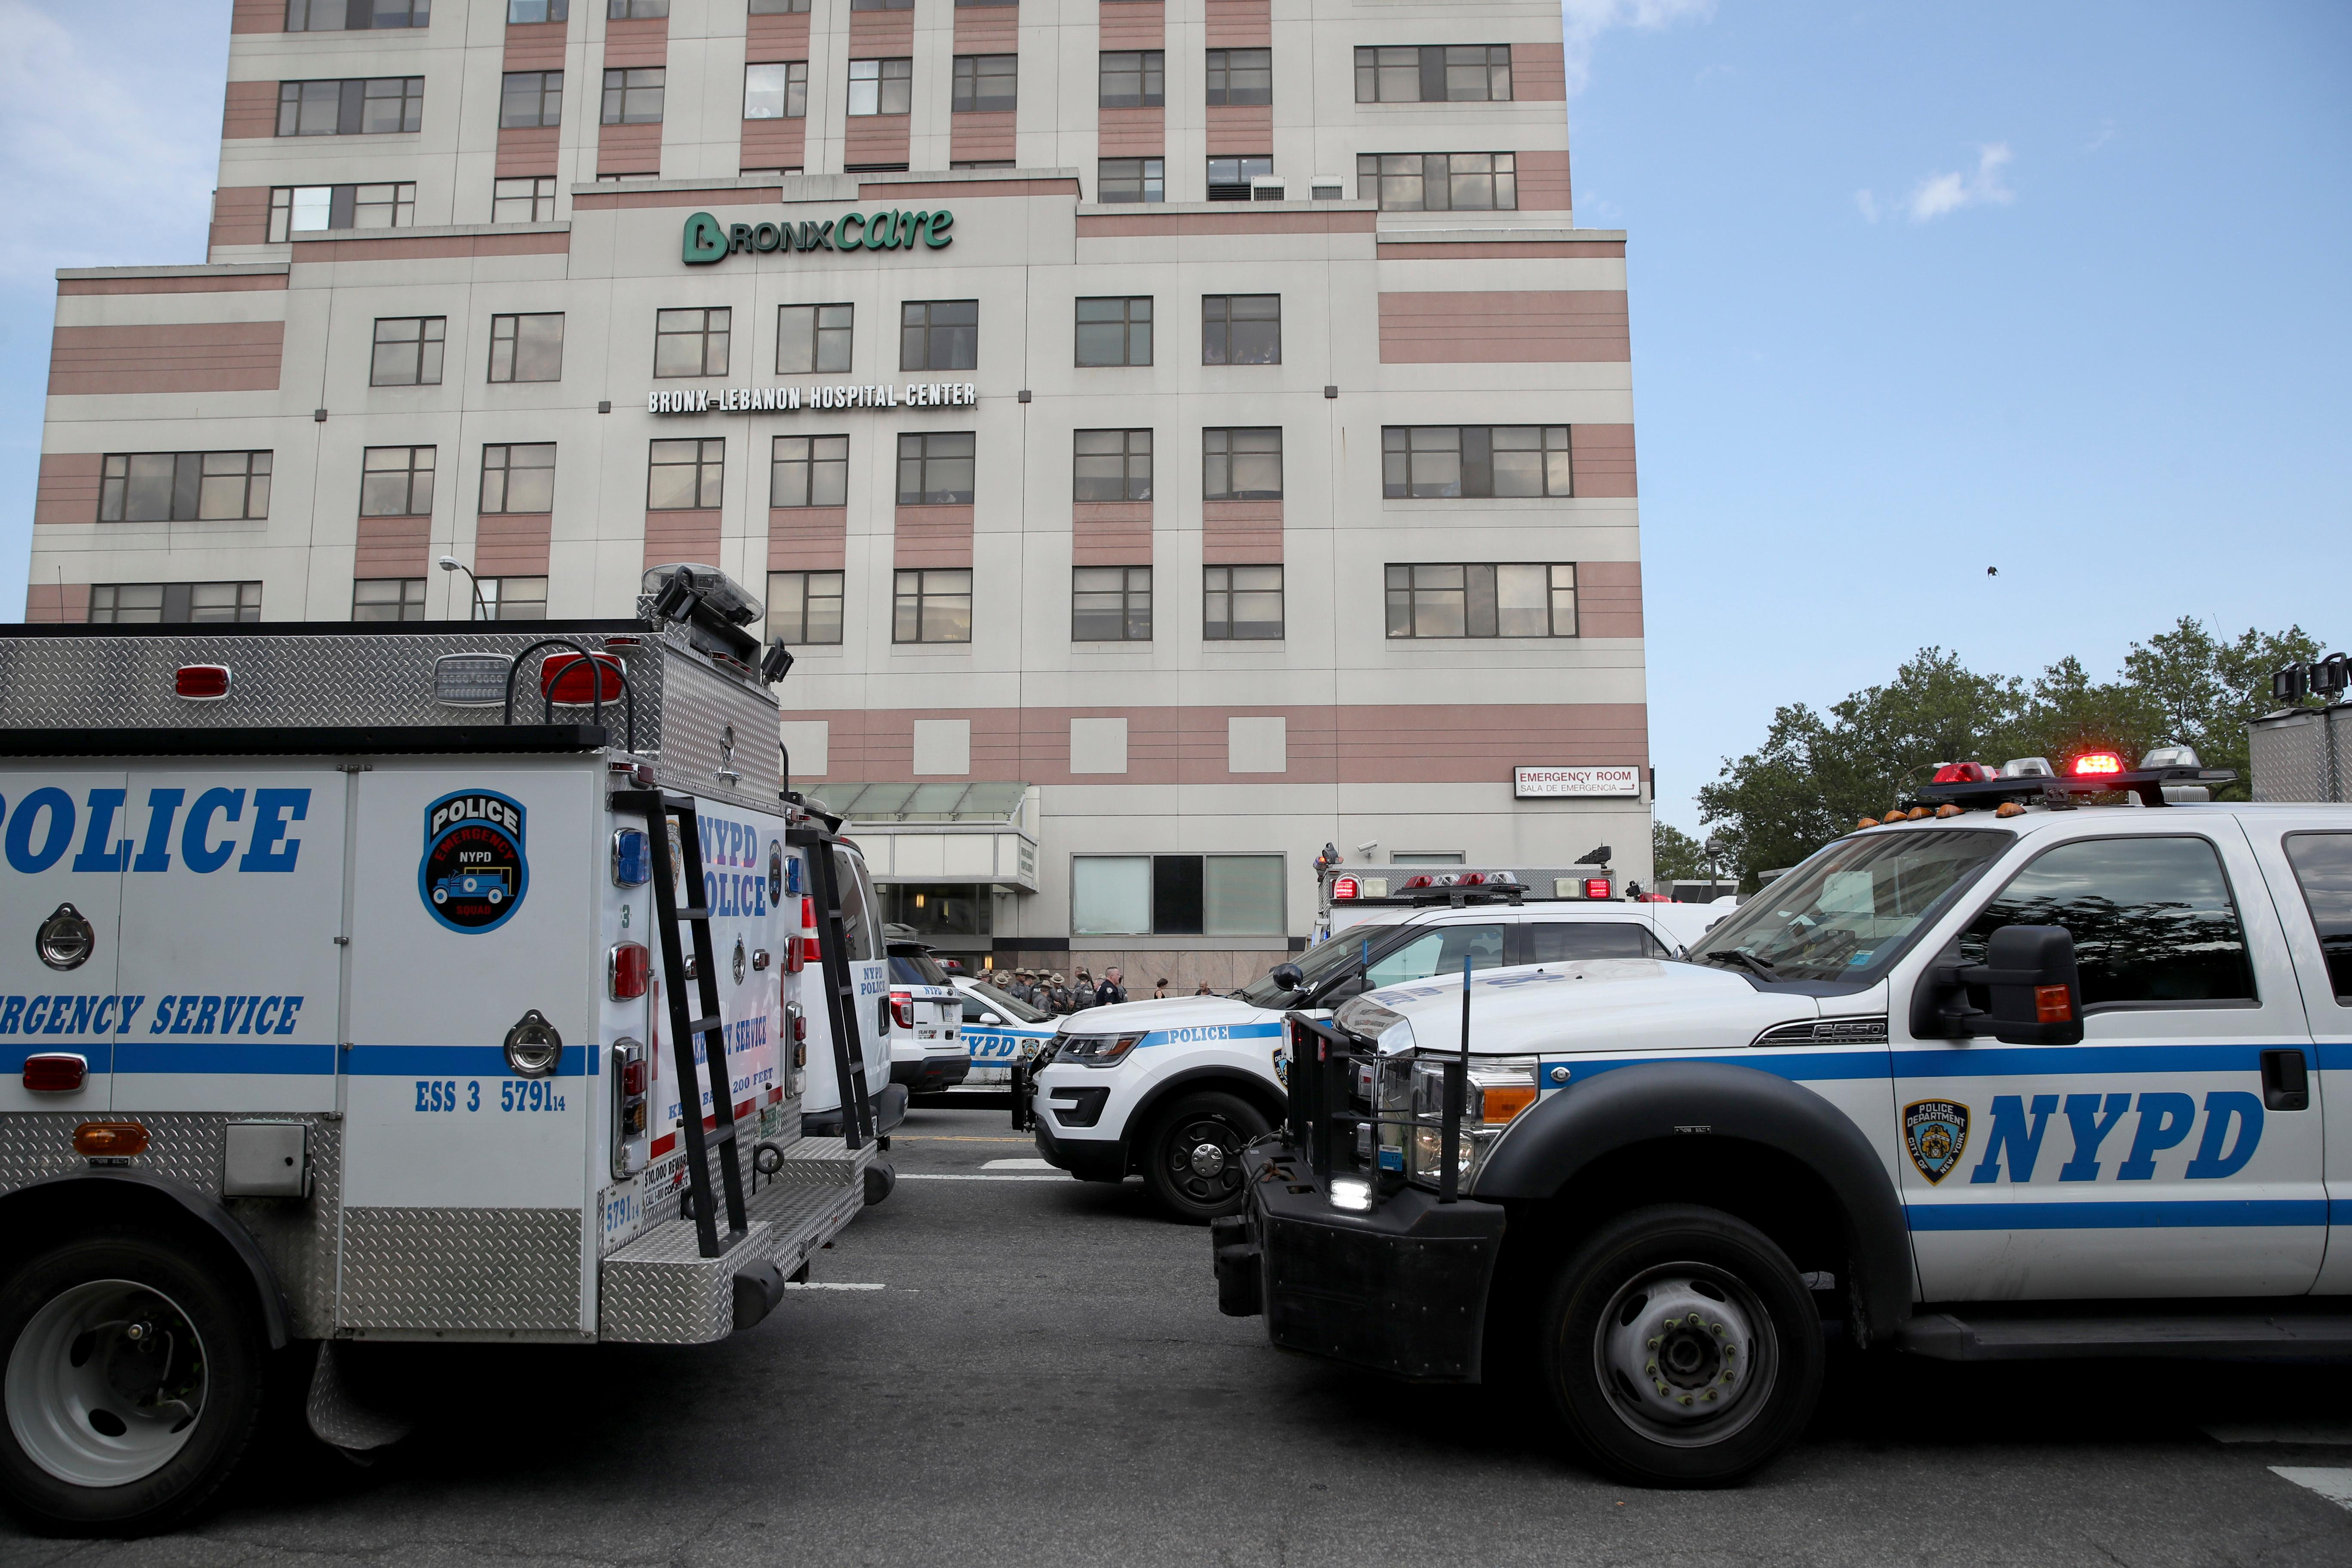 Police vehicles converge on Bronx Lebanon Hospital in New York after a gunman opened fire there on Friday, June 30, 2017. The gunman, identified as Dr. Henry Bello who used to work at the hospital, apparently took his own life after shooting others, authorities said. (AP Photo/Mary Altaffer)